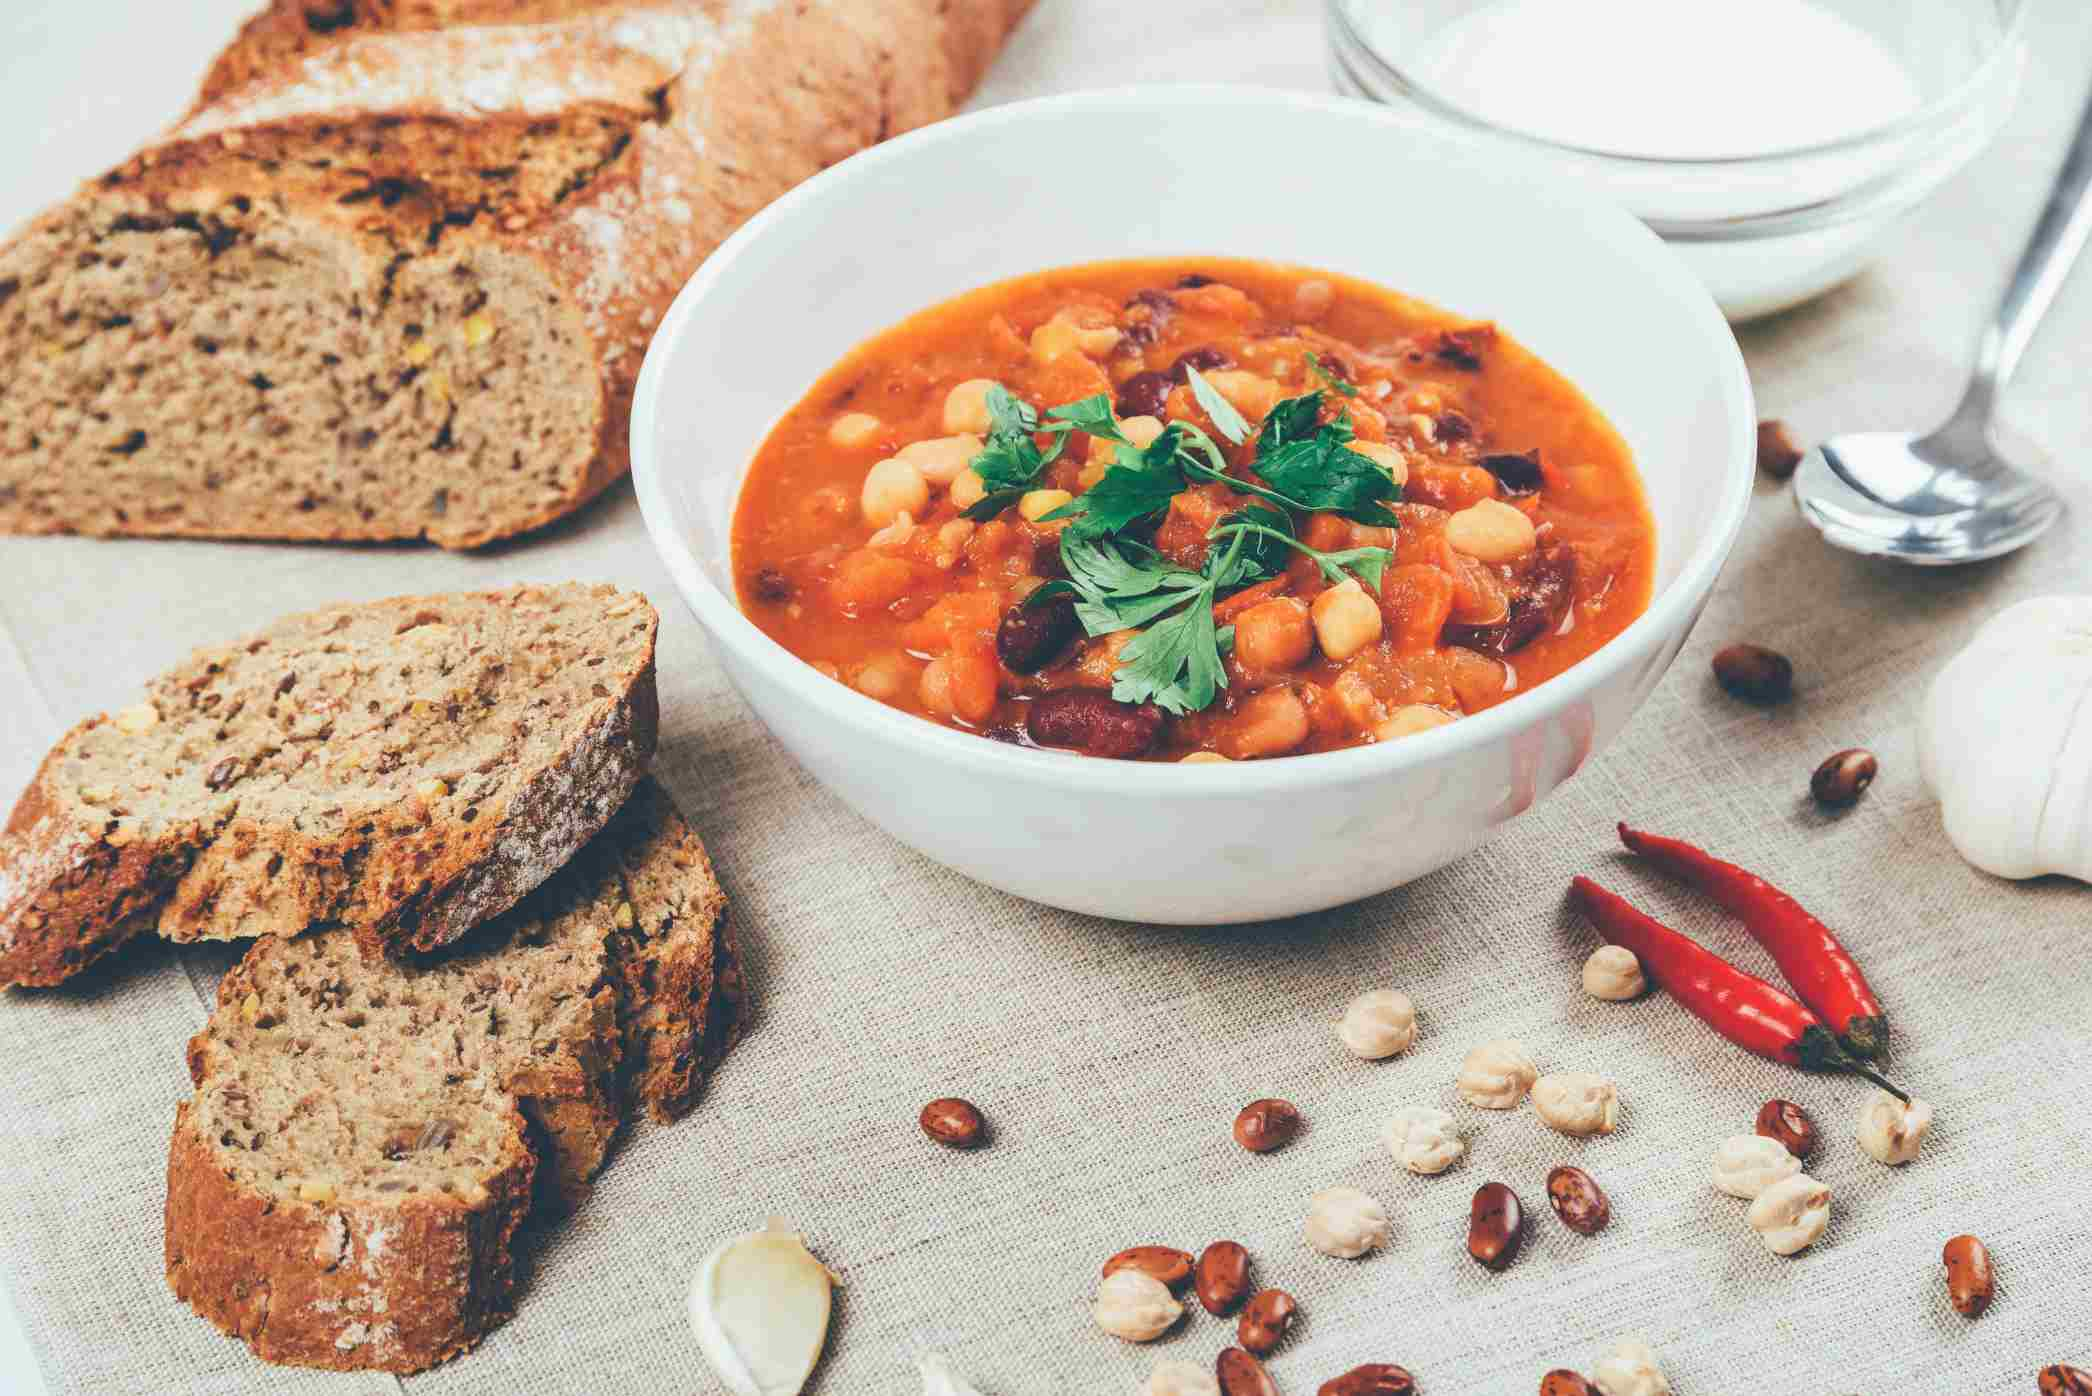 Vegetarian bean cholent with parsley garnish plus a loaf of bread